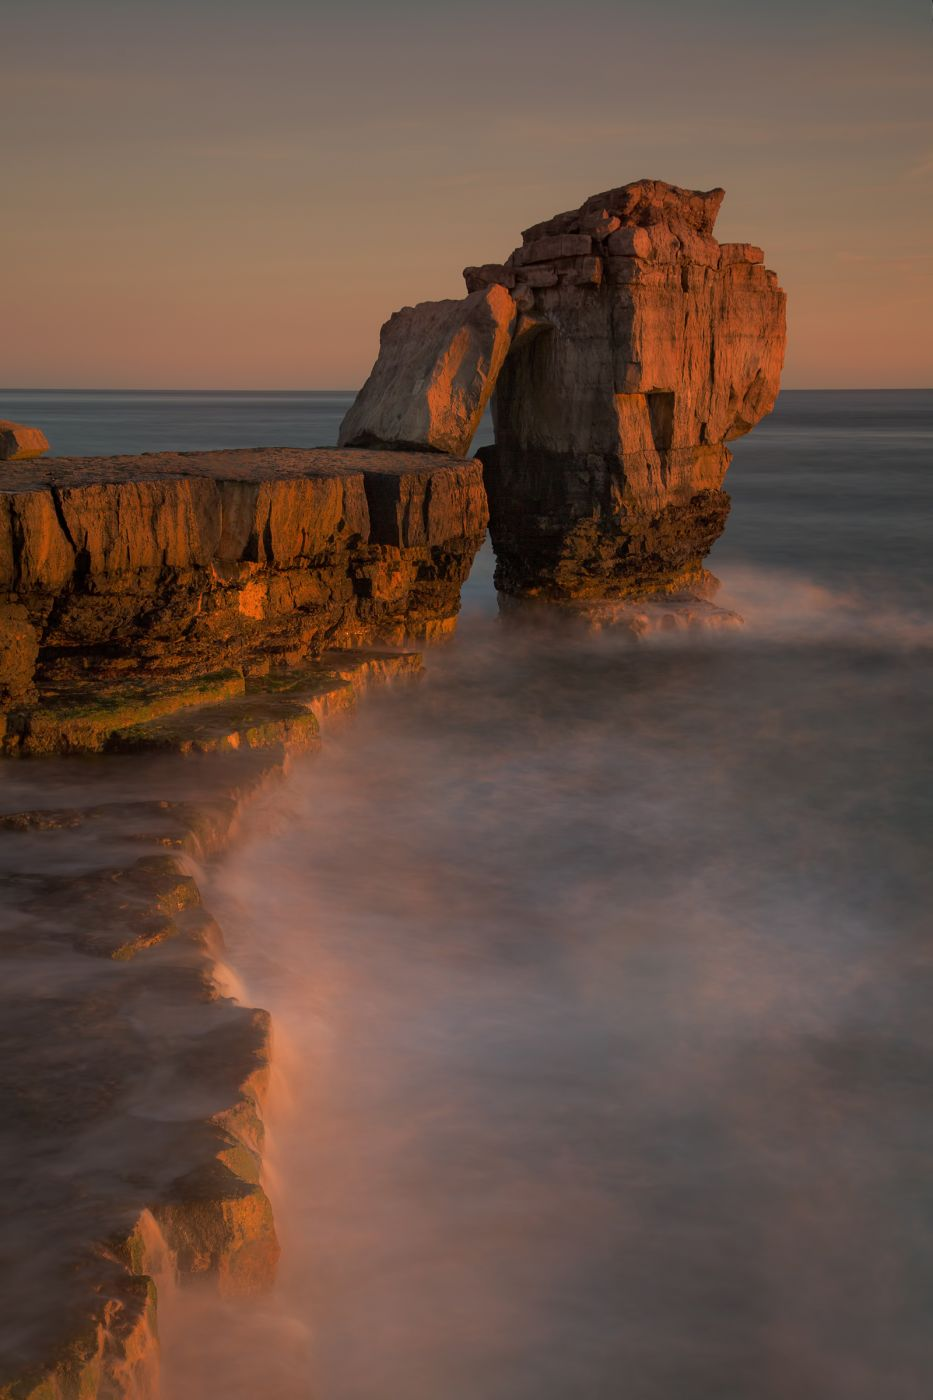 Sunset at Pulpit Rock, United Kingdom